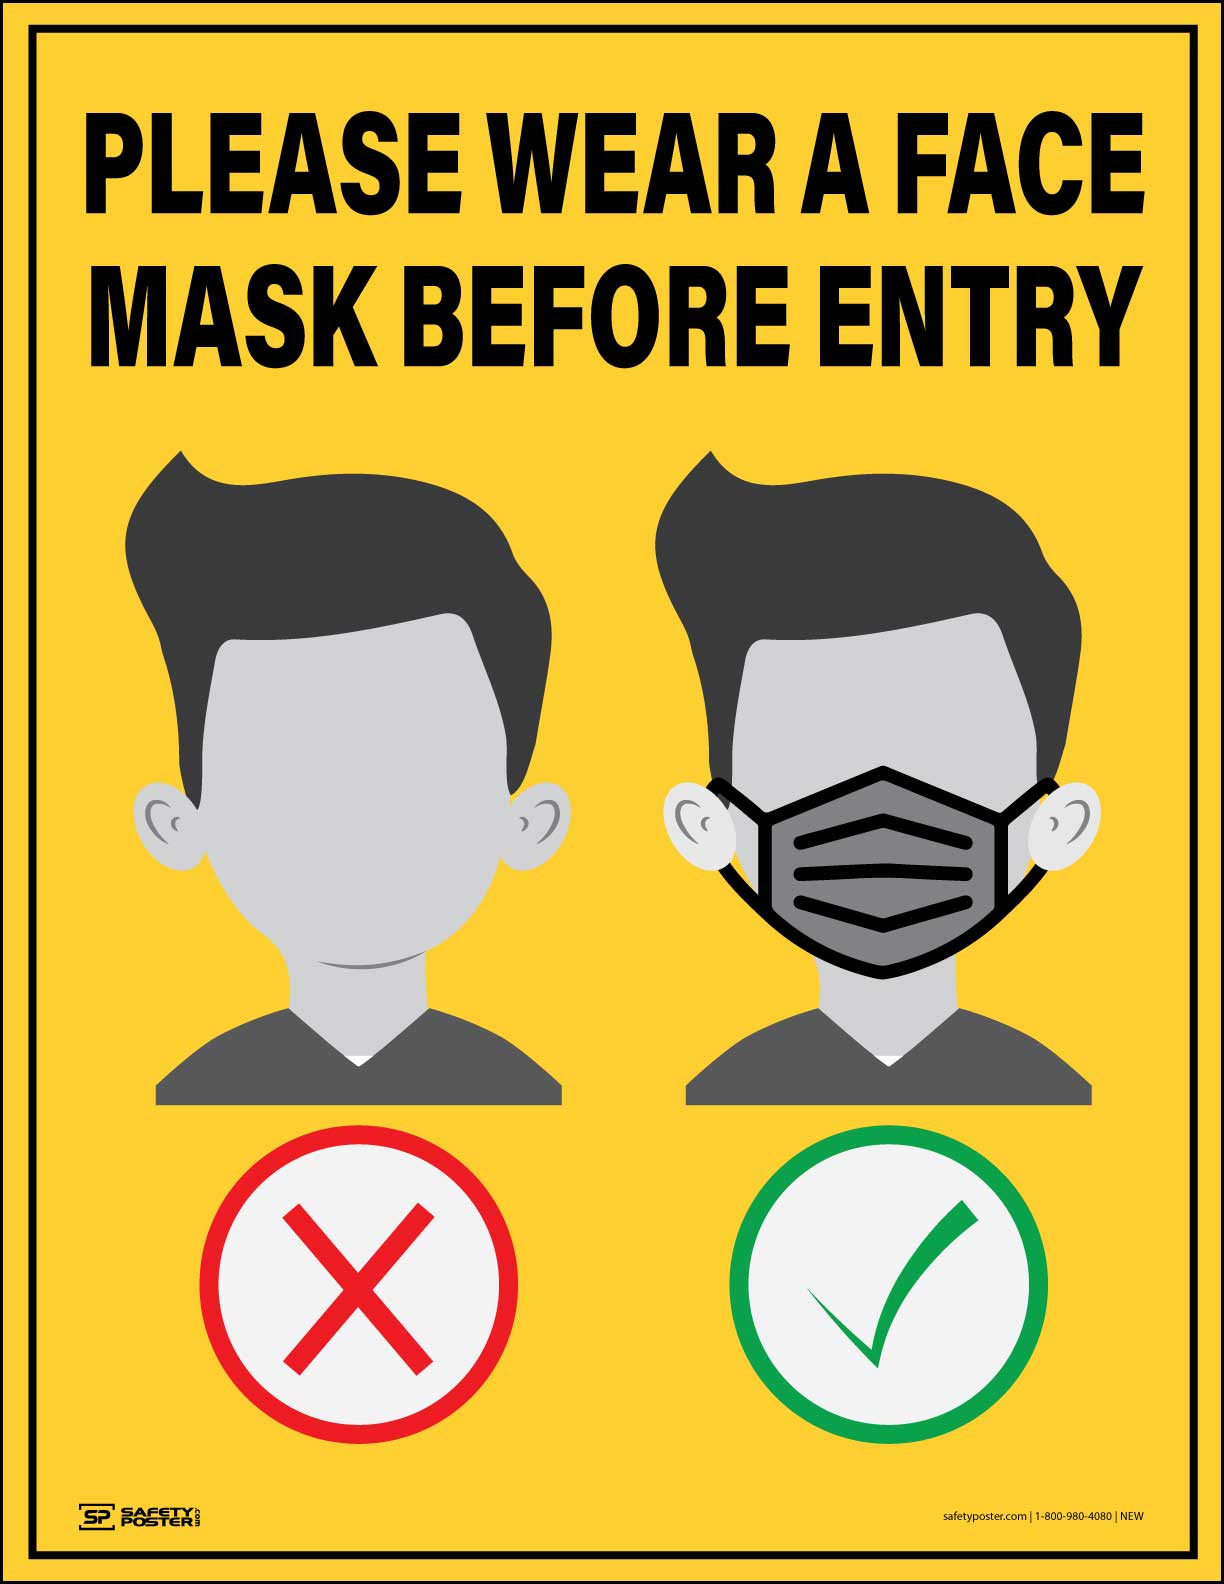 Please Wear A Face Mask Before Entry – Safety Poster